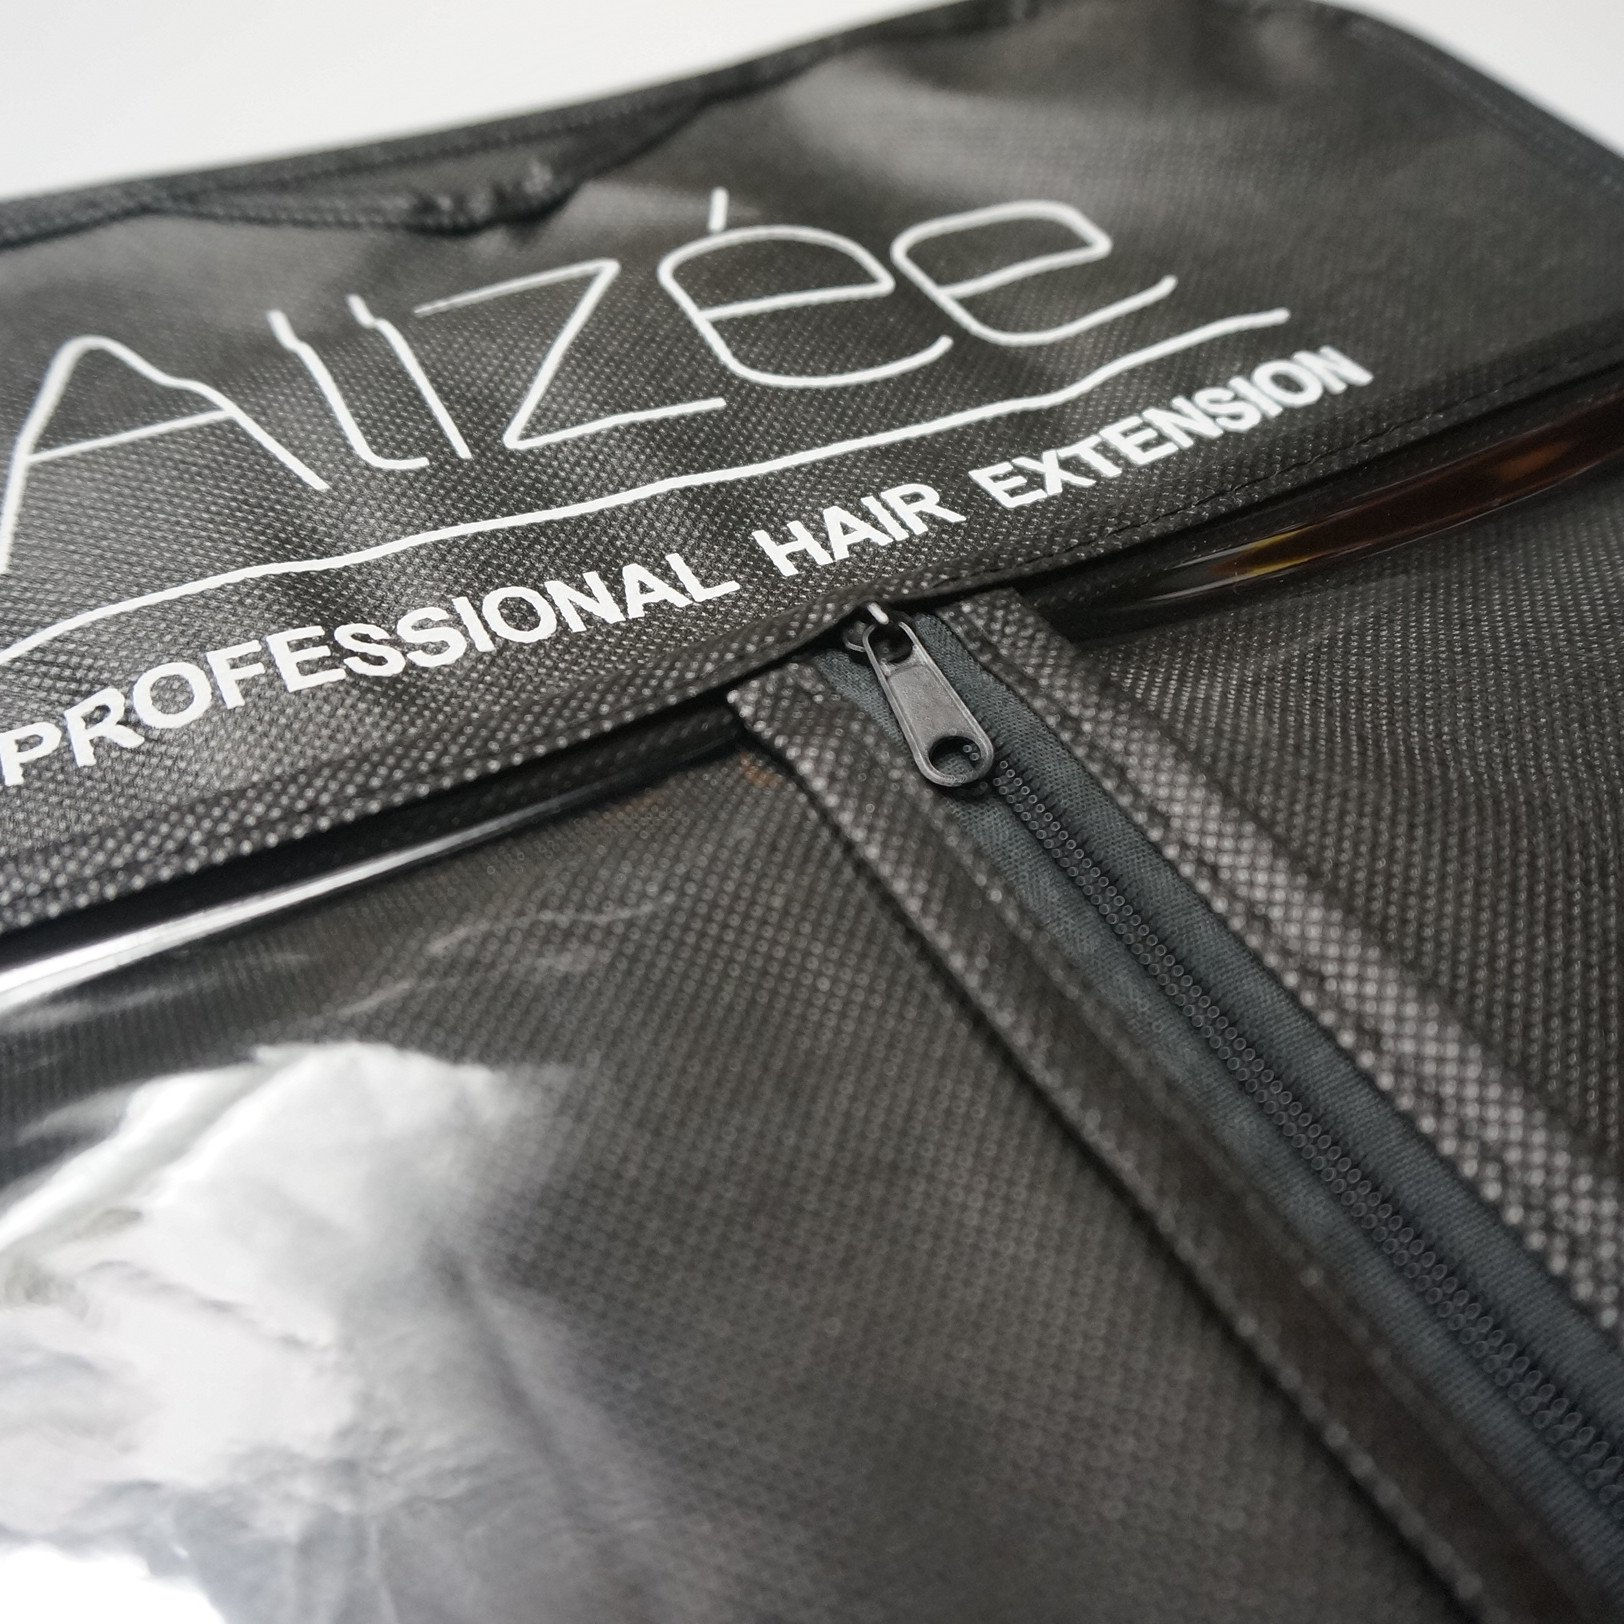 Alizée Professional Hair Extension Carrier Nonwoven Suit Case Bag With Black Wooden Hanger For Wigs & Hair Bundles & Clip in Hair Extensions Organizer Storage Box